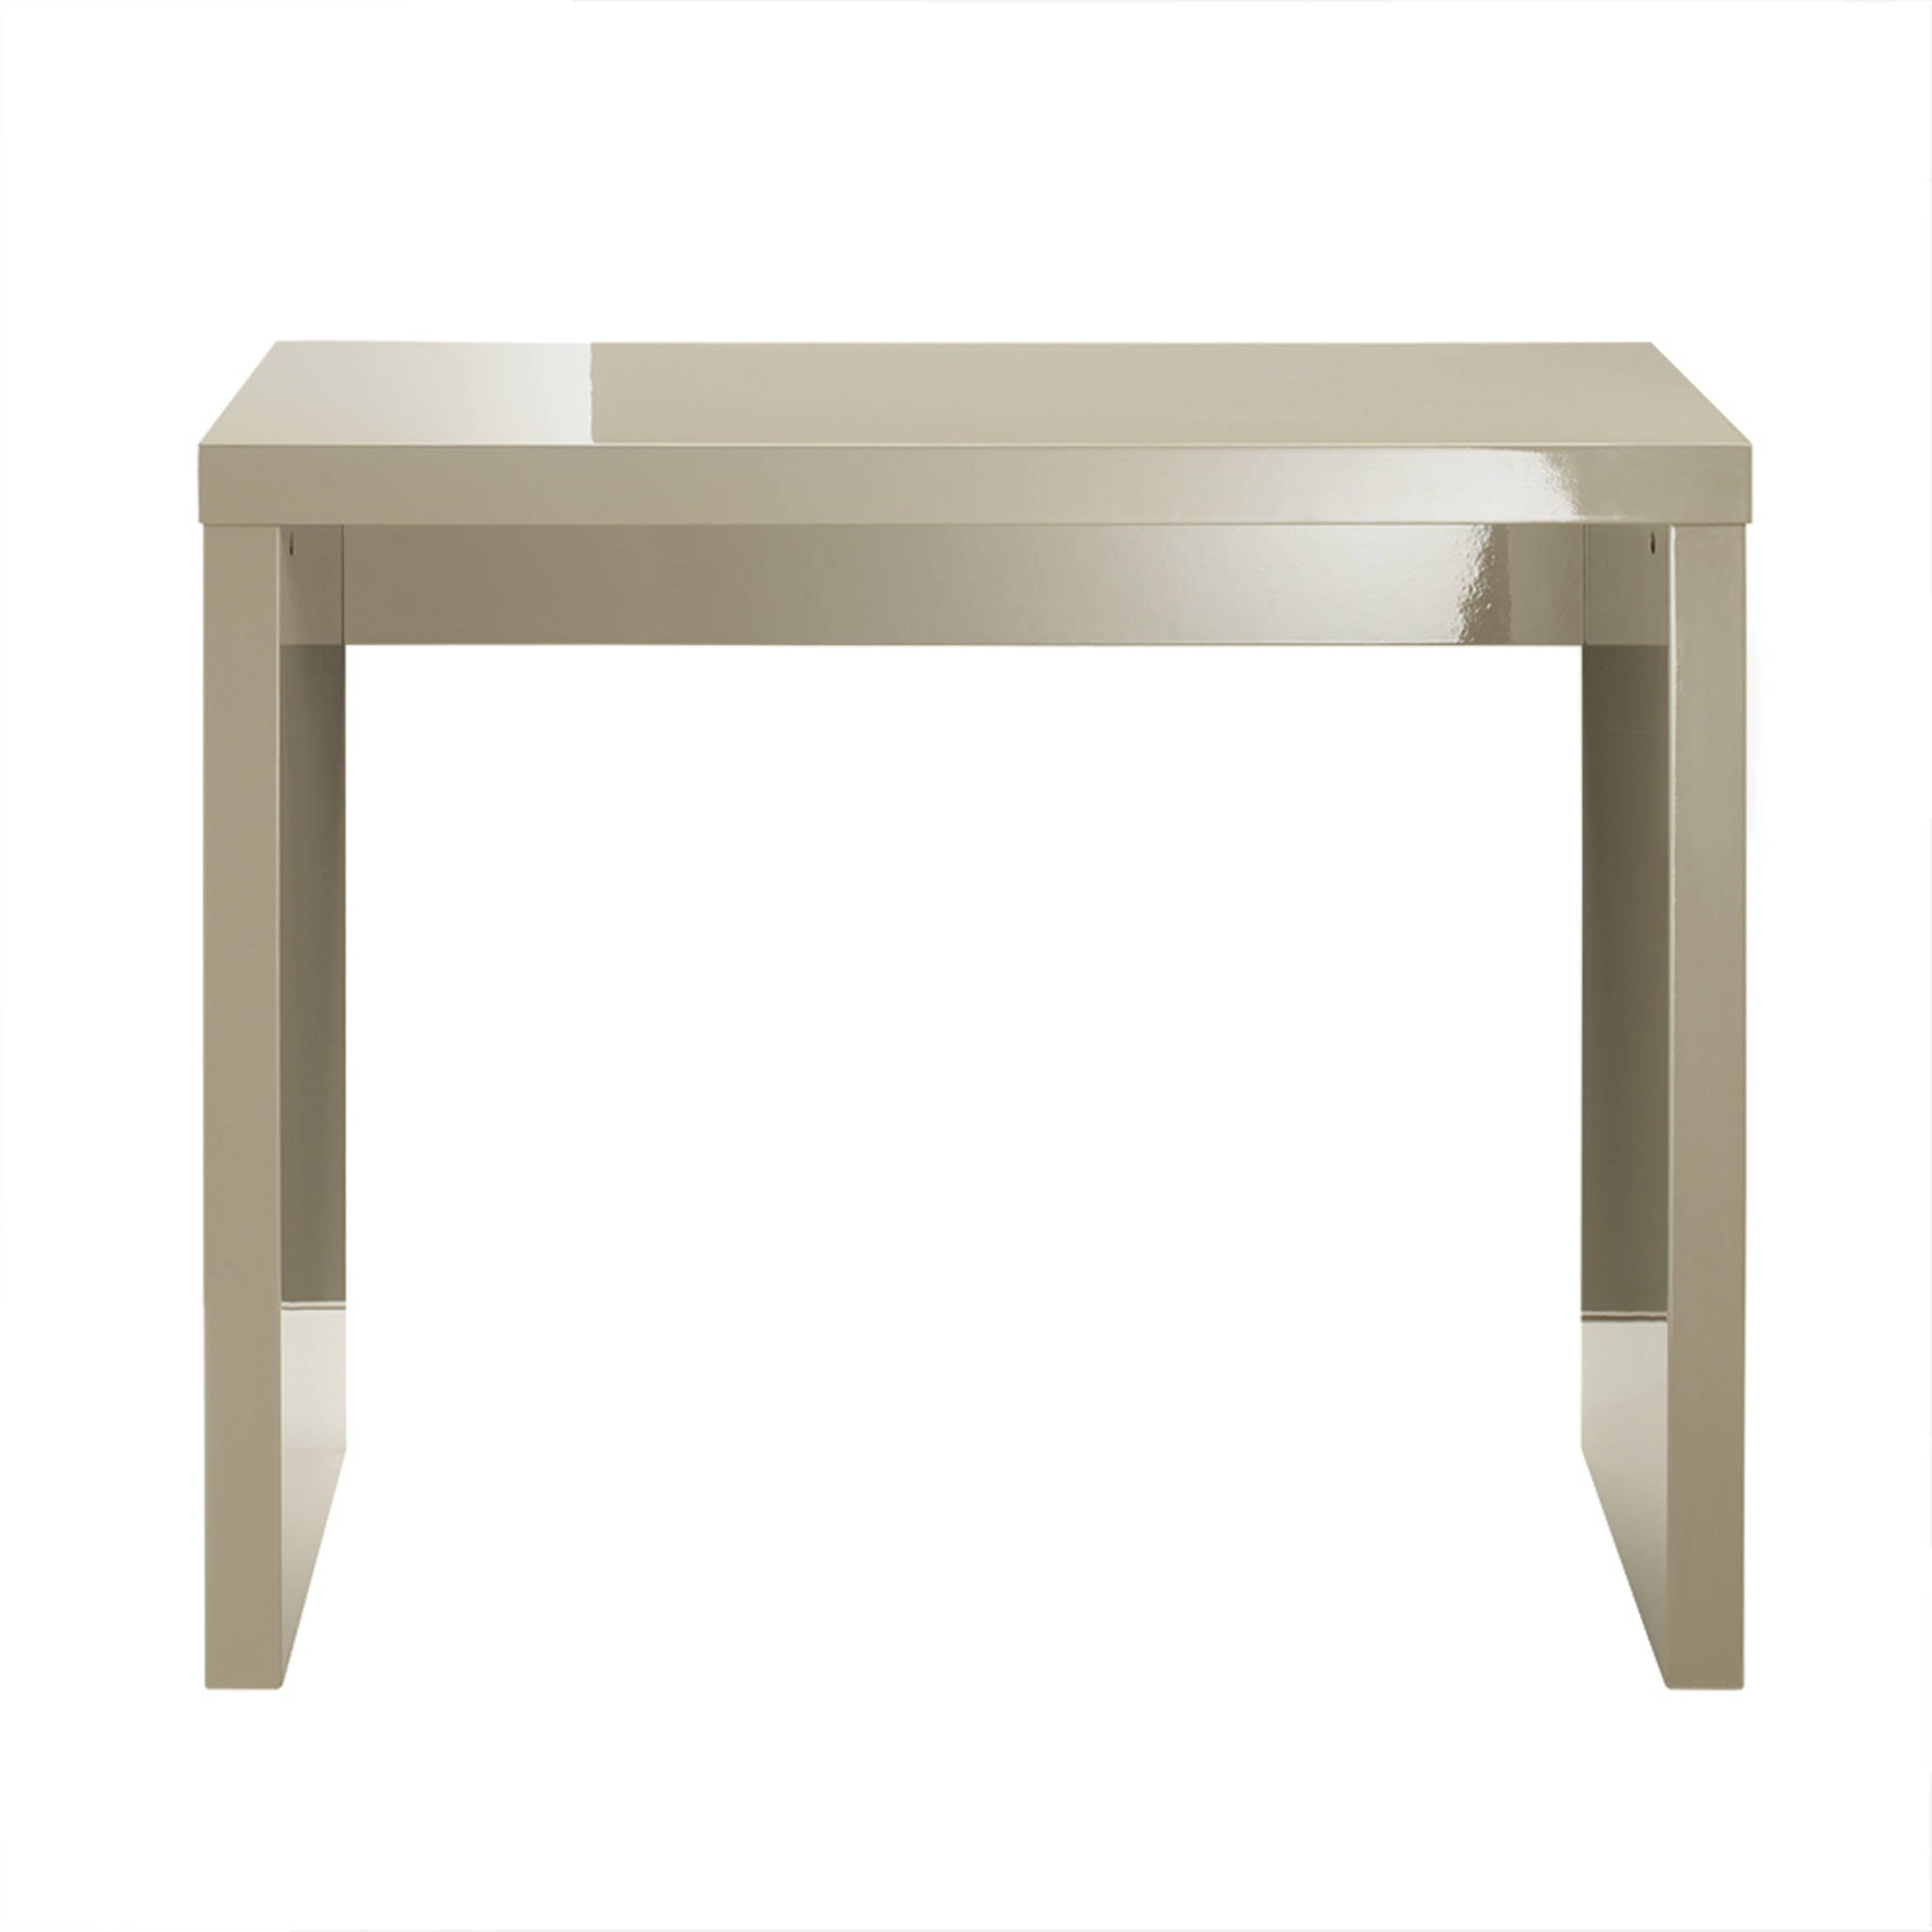 Sterling Small Dining Table in Stone